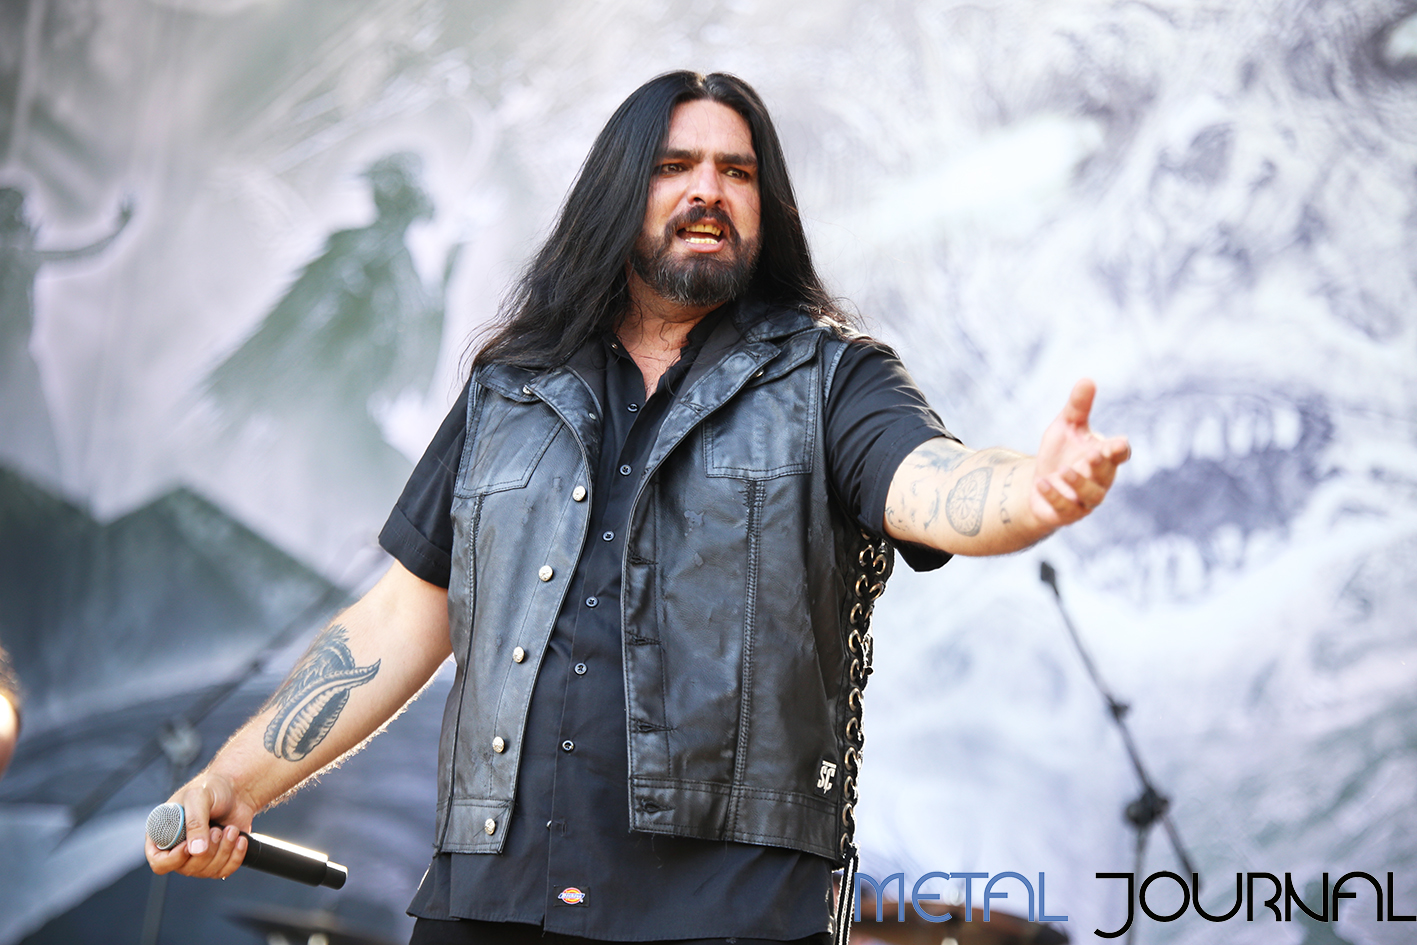 lords of black - leyendas del rock 2019 metal journal pic 4